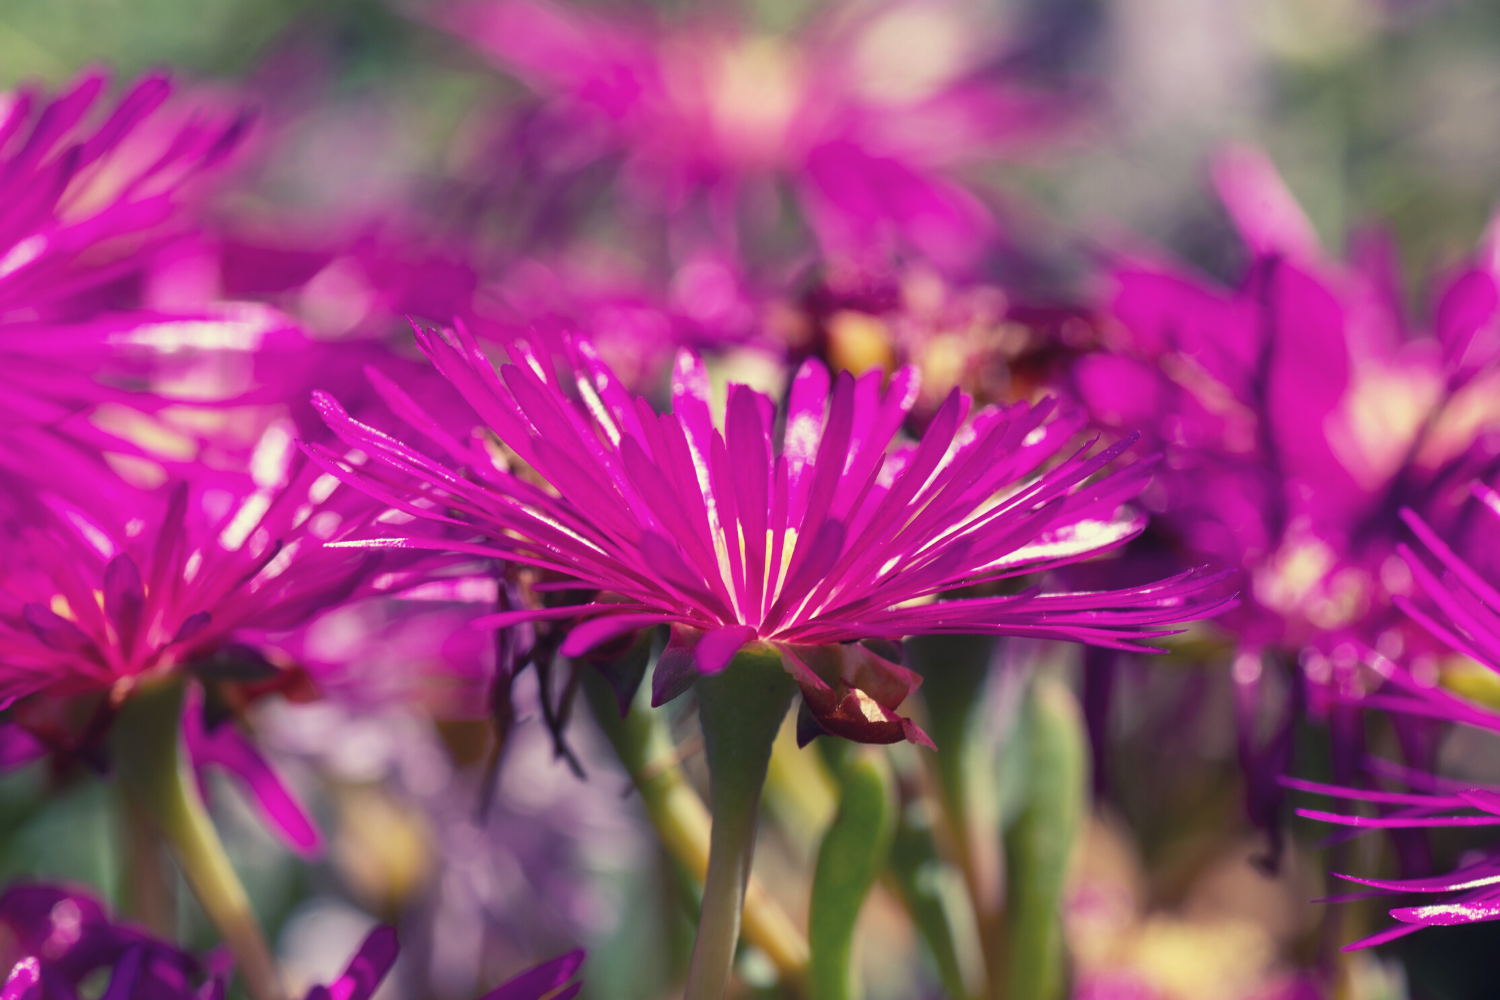 A grouping of pink flowers